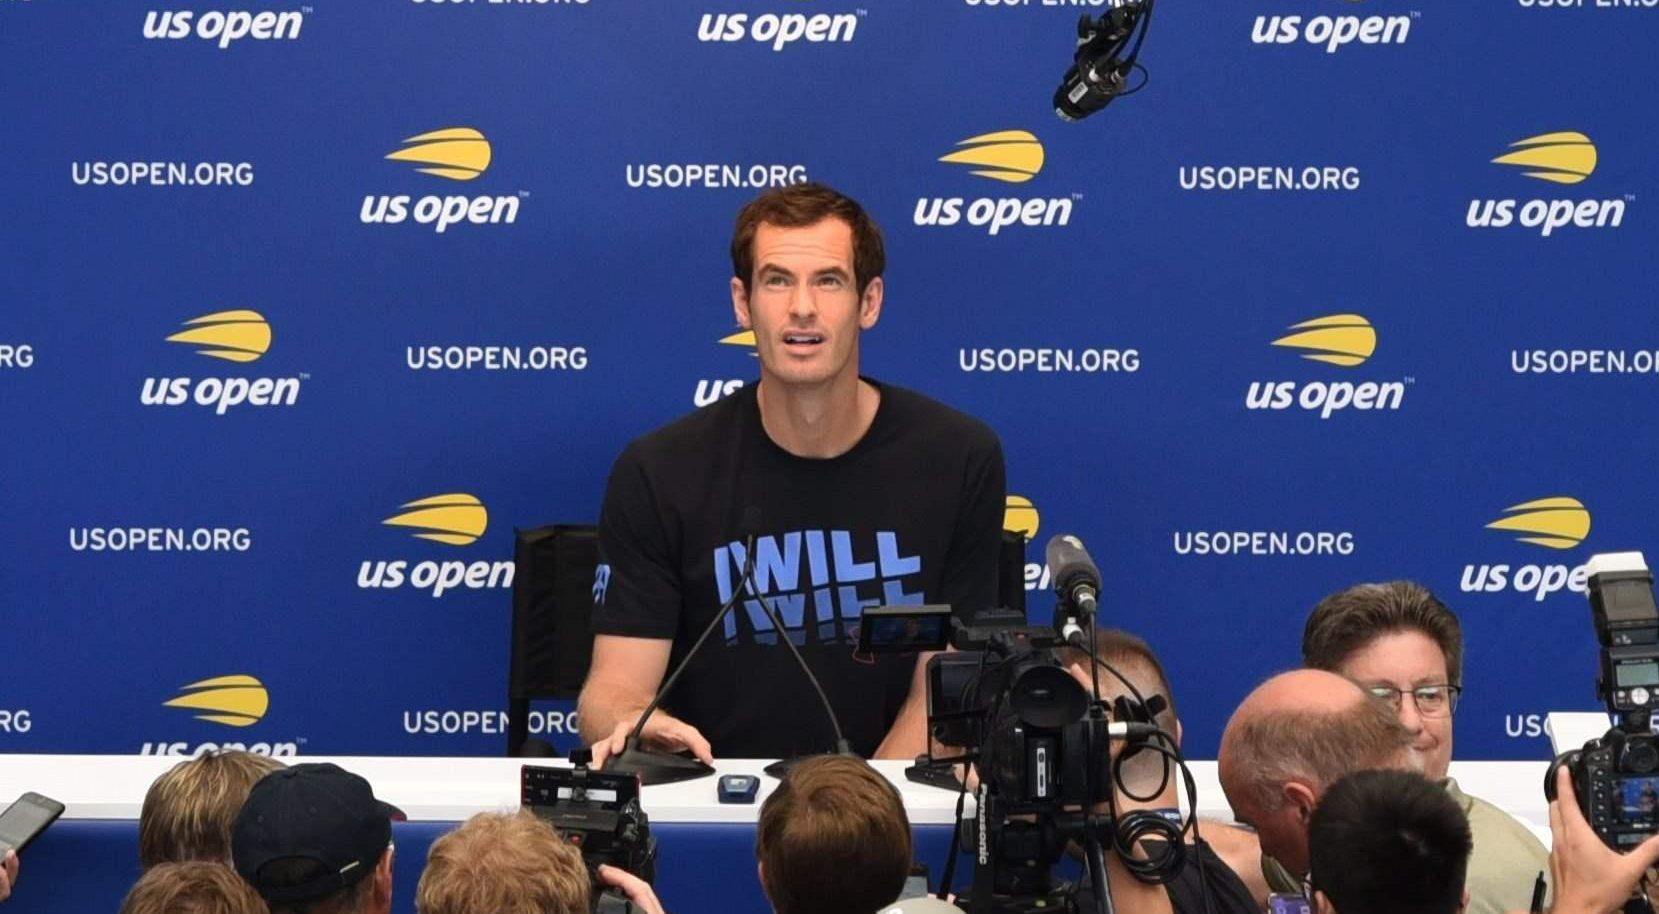 Andy Murray has written off his chances at Monday's US Open